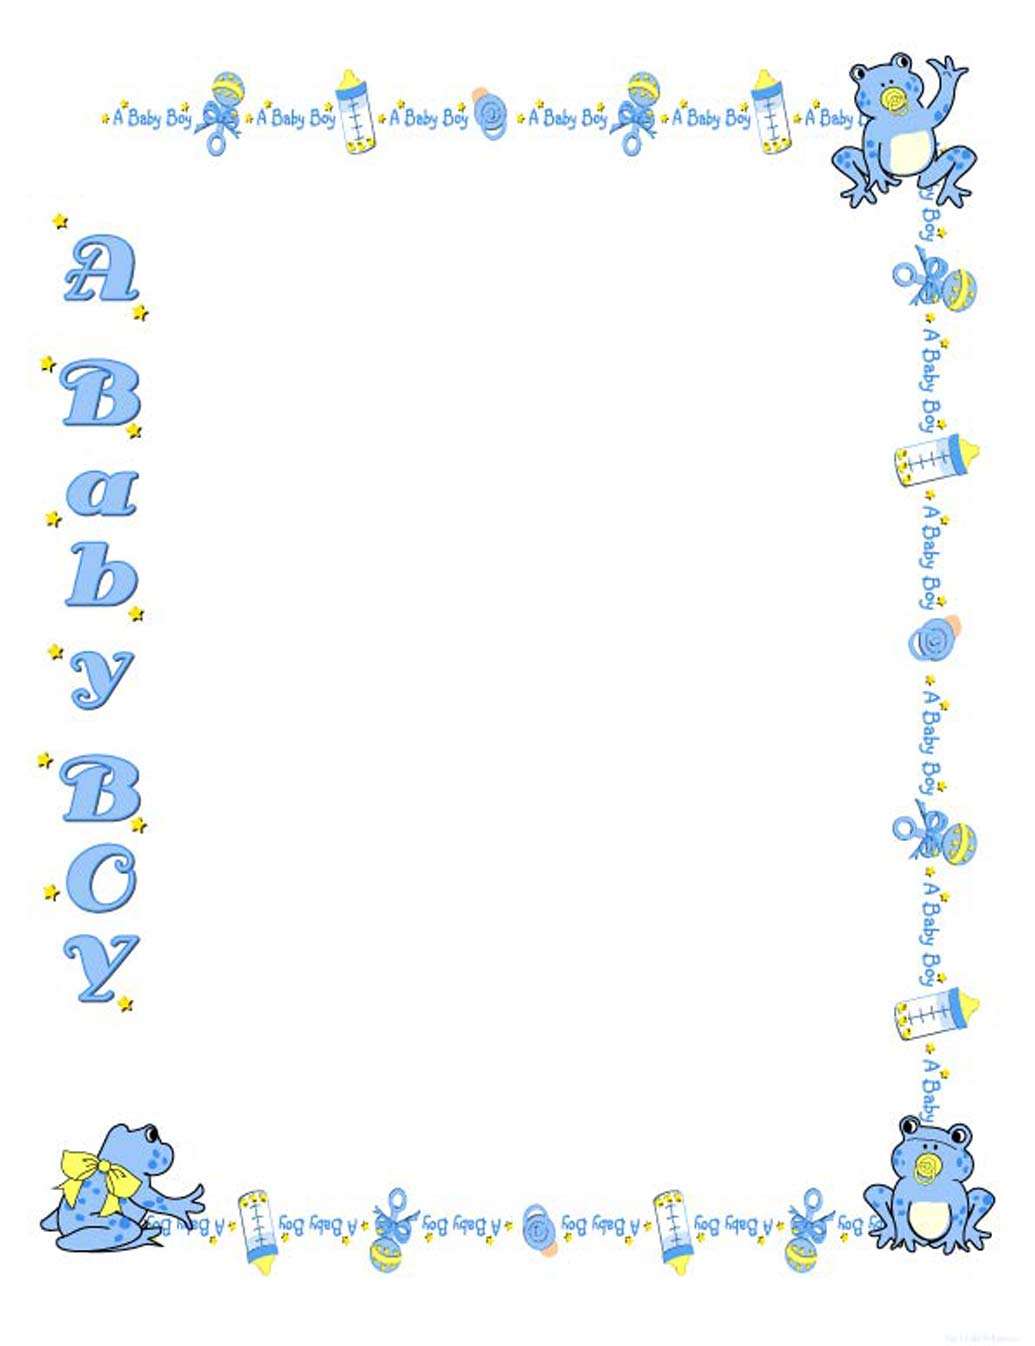 Calm S On Iphone Borders Free Scrapbook Template Breast Cancer Free Frog Download Free Clip Free Clip Art On Clipart Borders S On Facebook photos Borders For Pictures